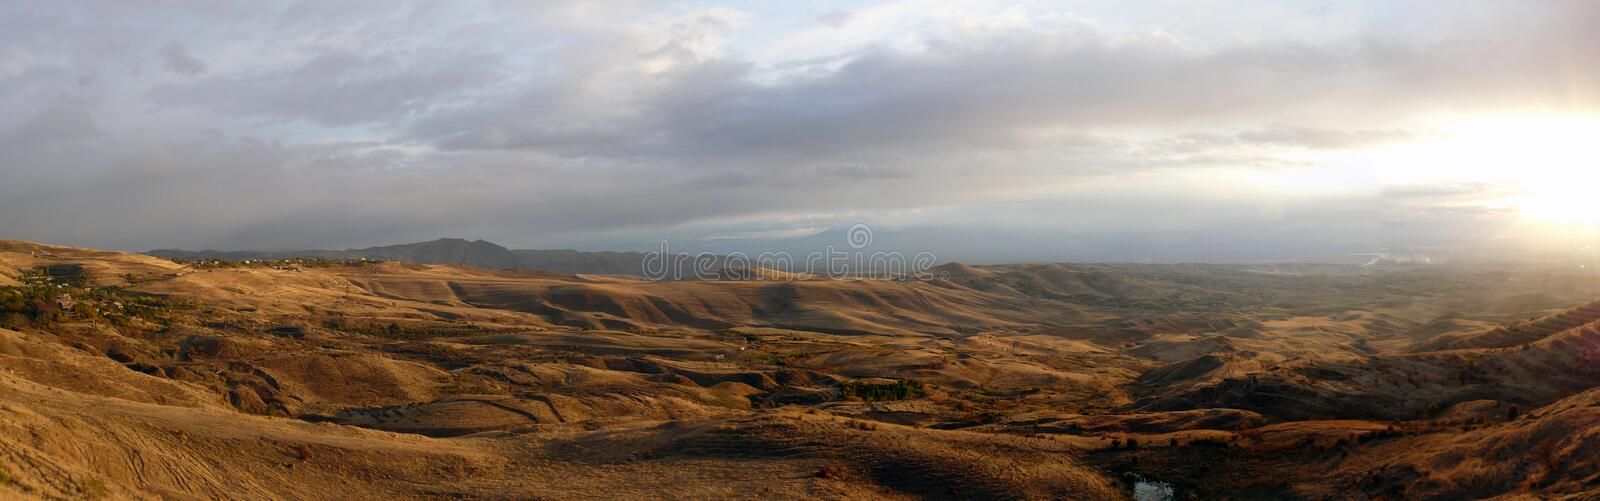 Download Steppe Landscape On A Decline Panorama Stock Photo - Image: 22269854